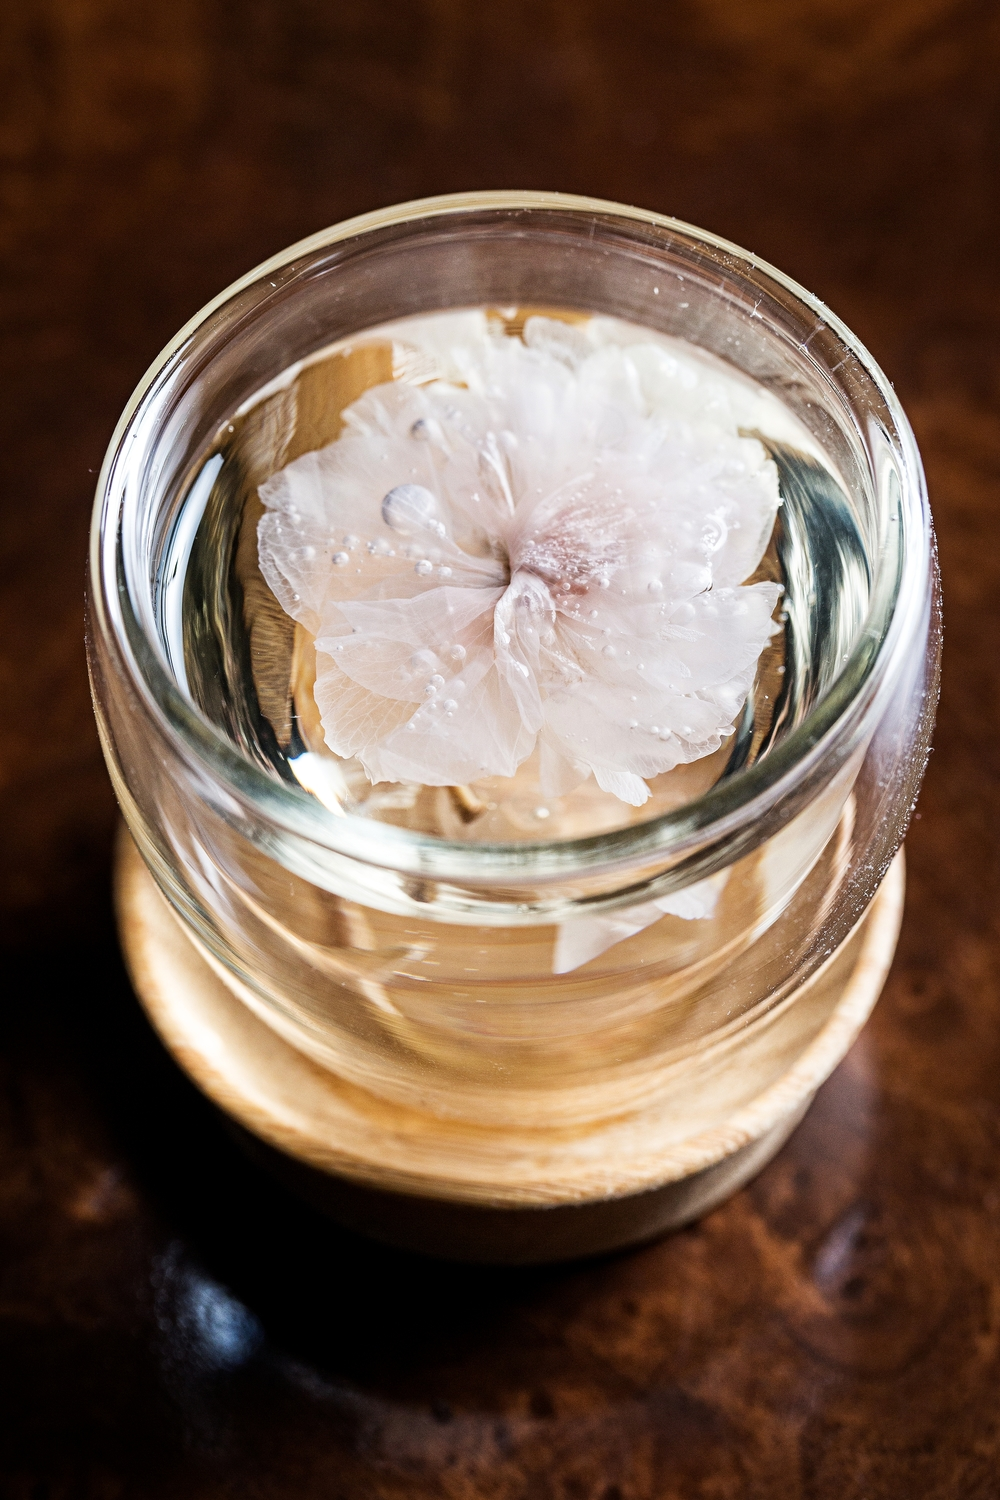 The Columbia Room's cocktail menu includes Cherry Blossom Tea with a pickled cherry-blossom flower suspended in a glass of malty Mizu shochu and apricot liqueur. (Photo: Columbia Room)